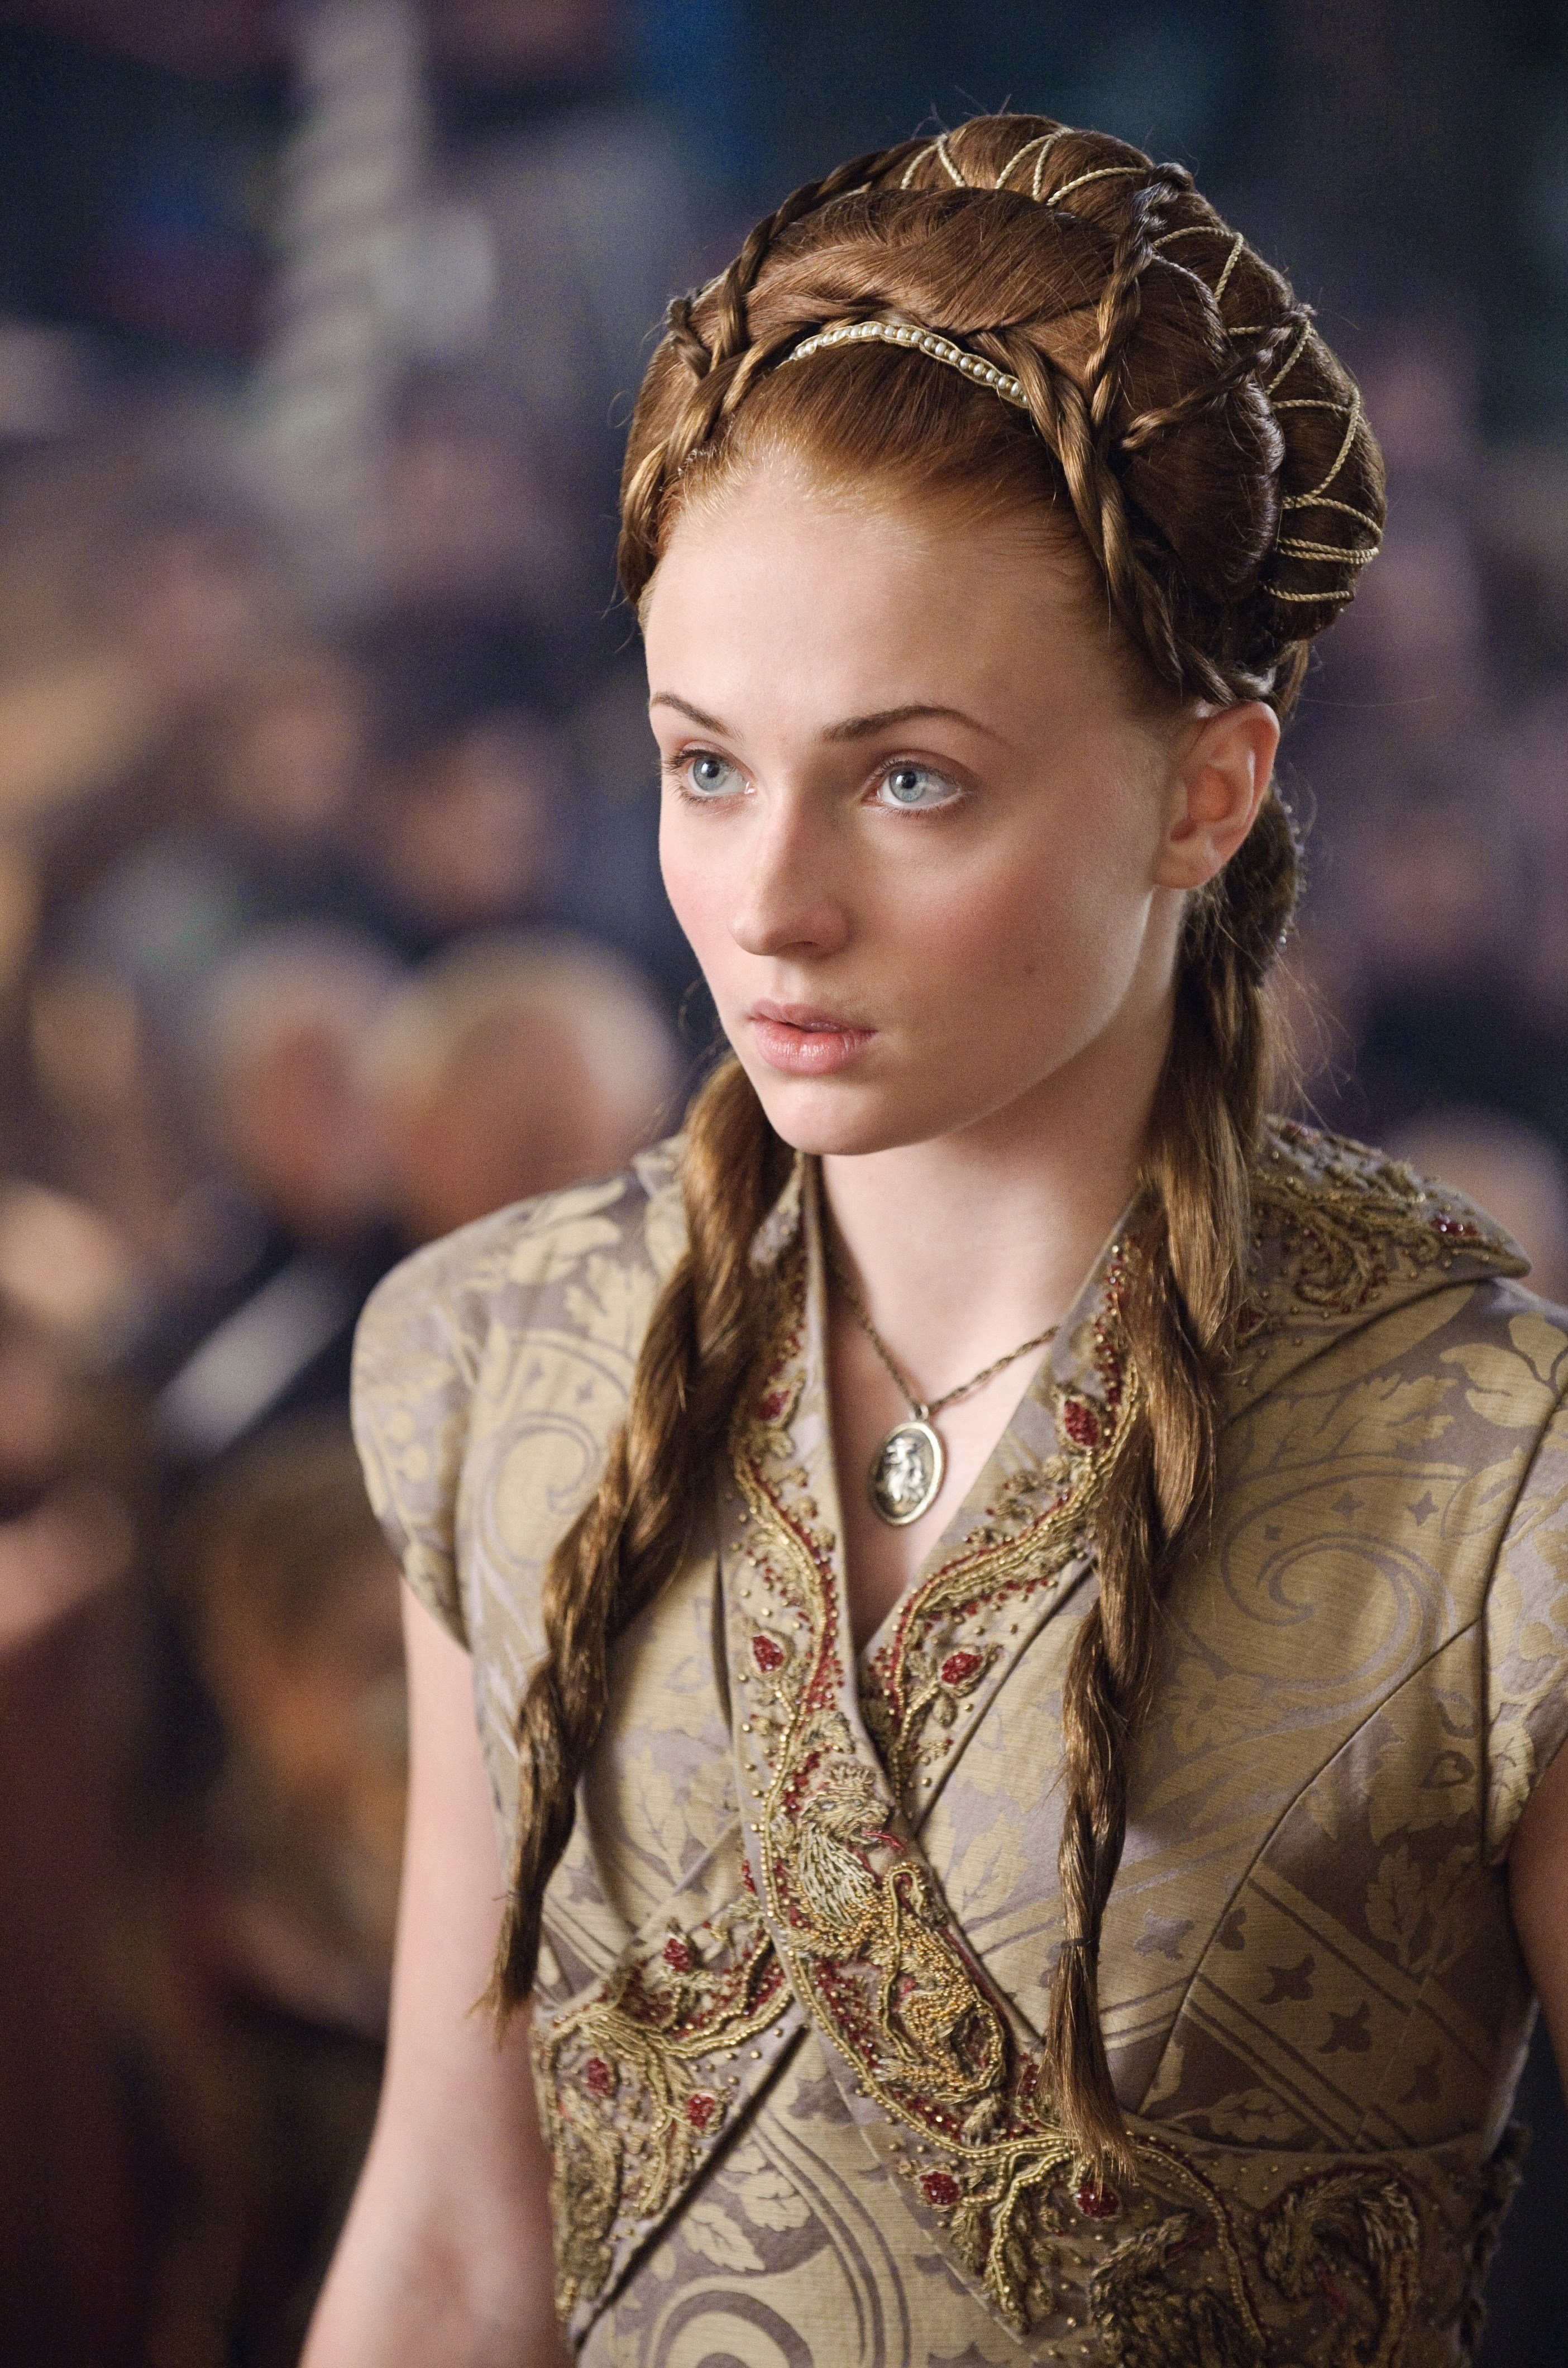 Sophie Turners Glorious Lush Hair Is So SANSA STARK